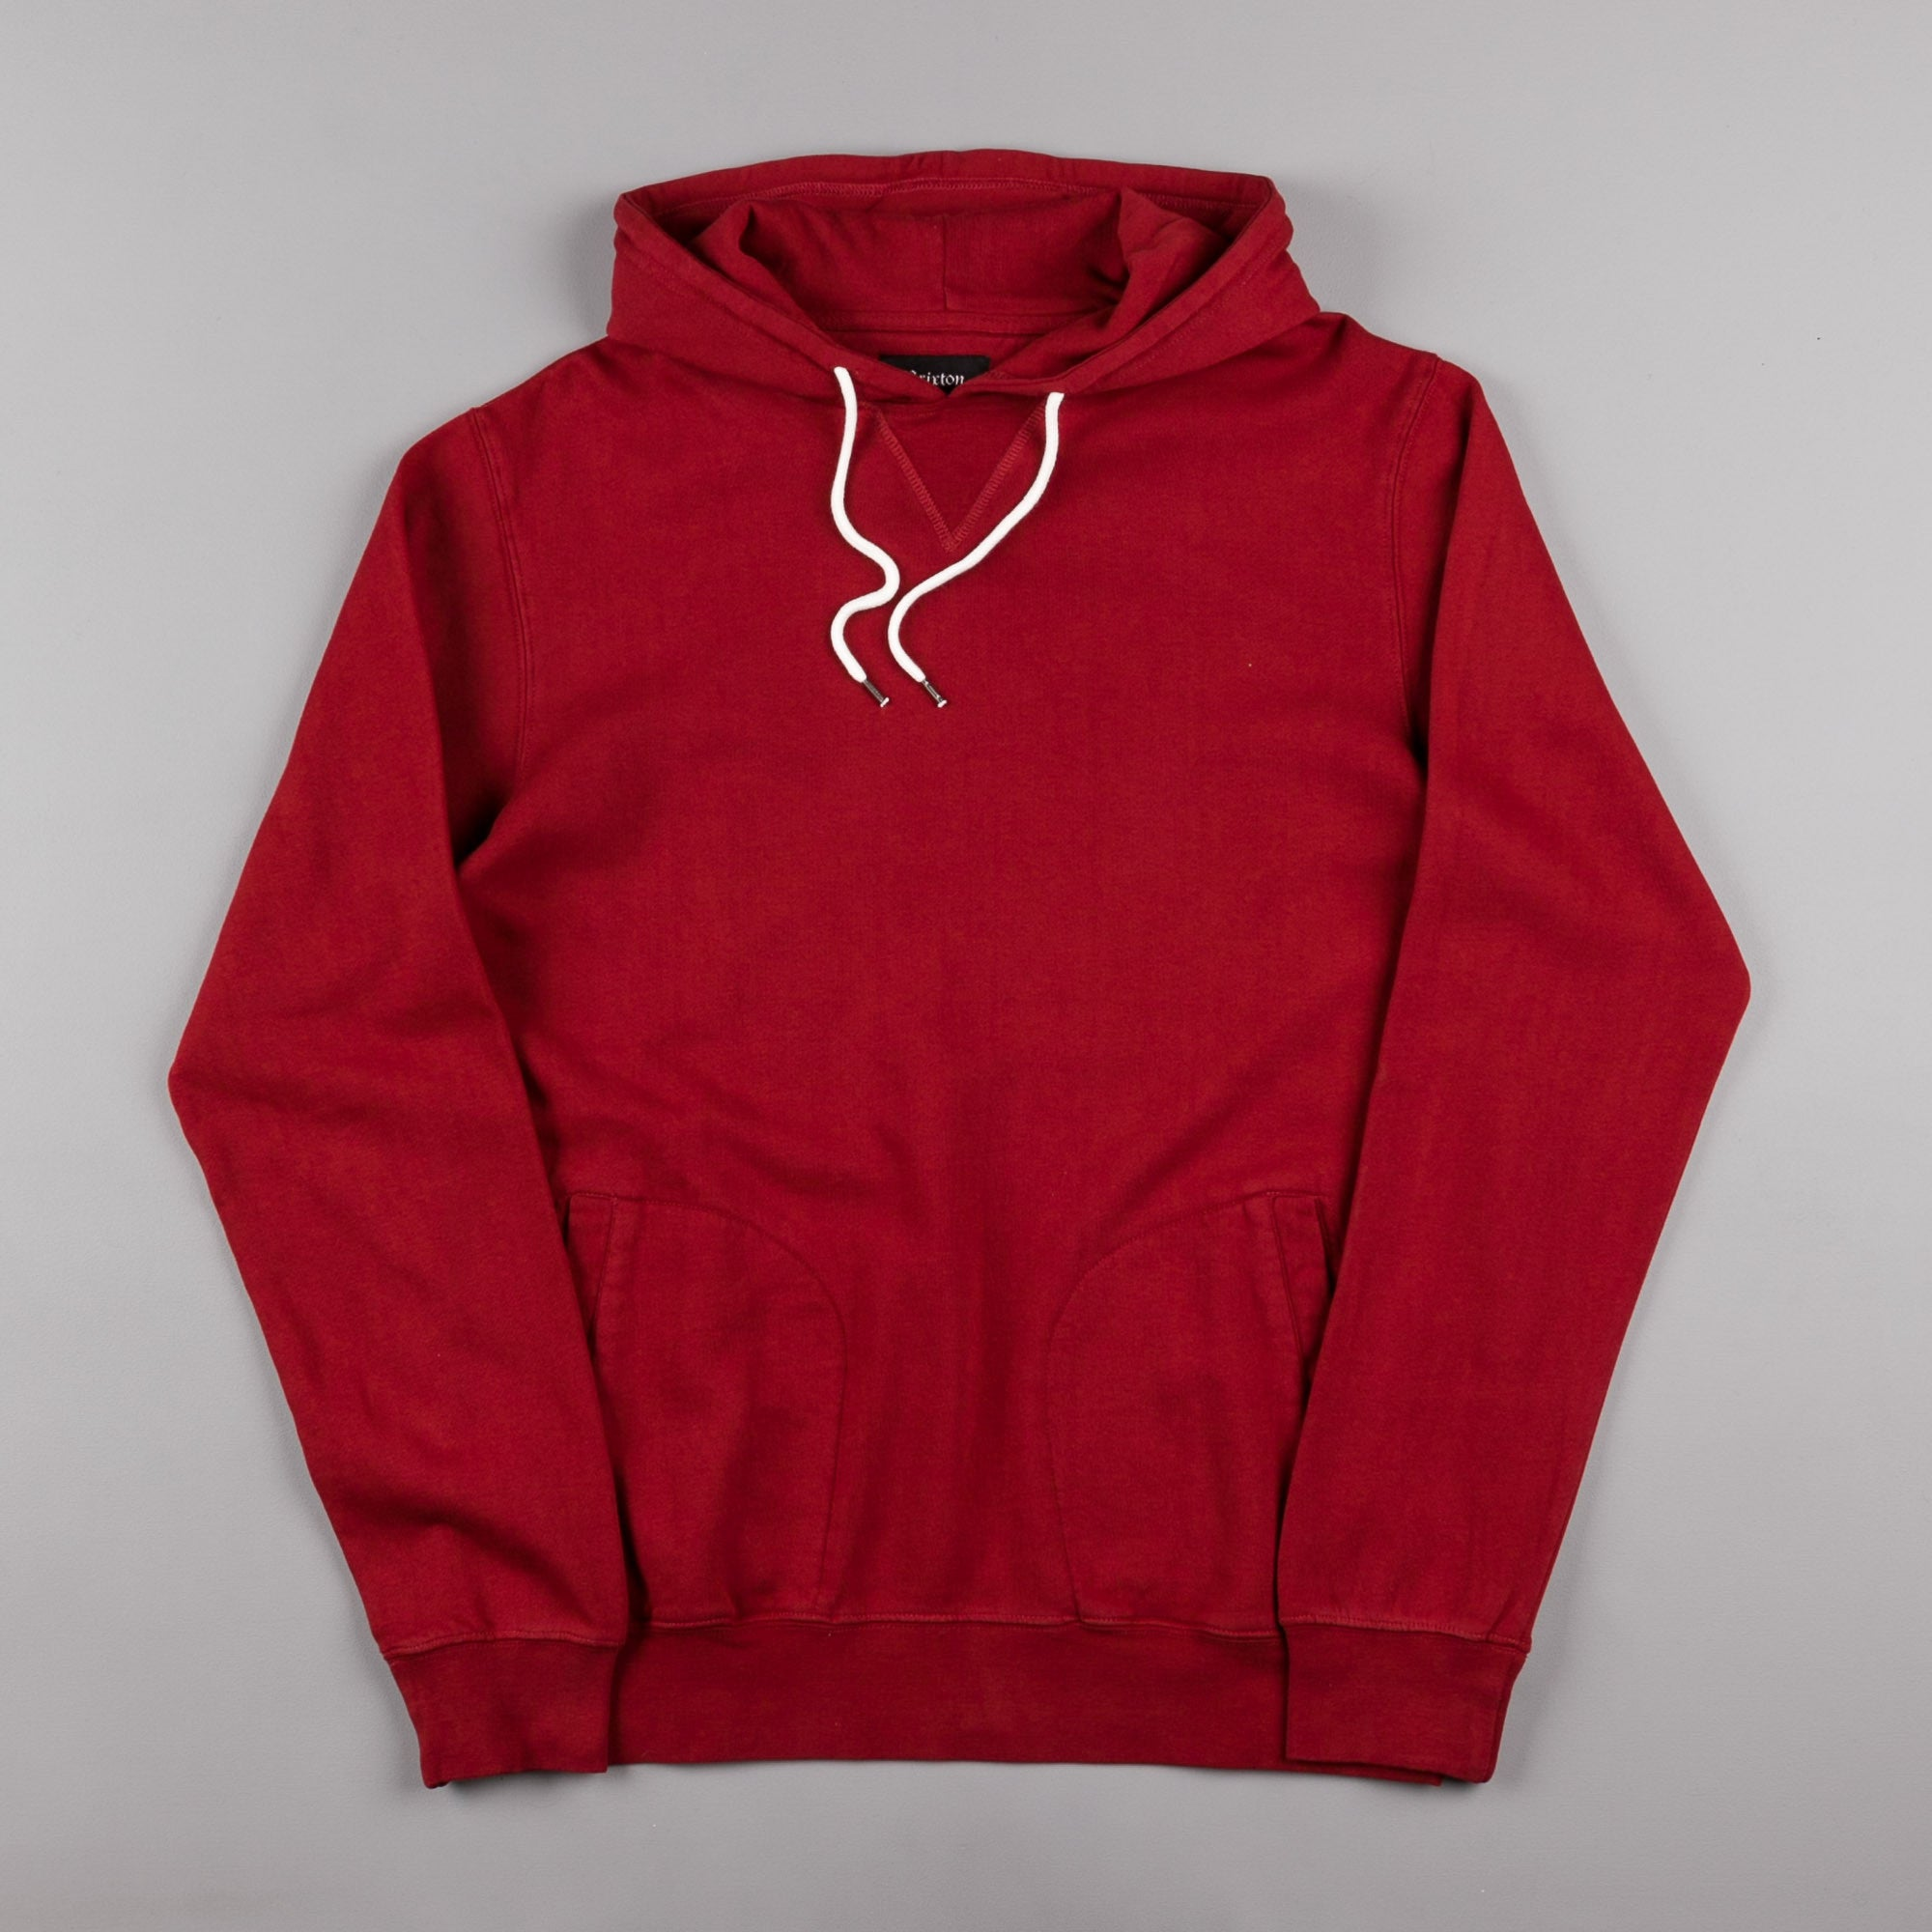 Brixton Damo Hooded Sweatshirt - Burgundy